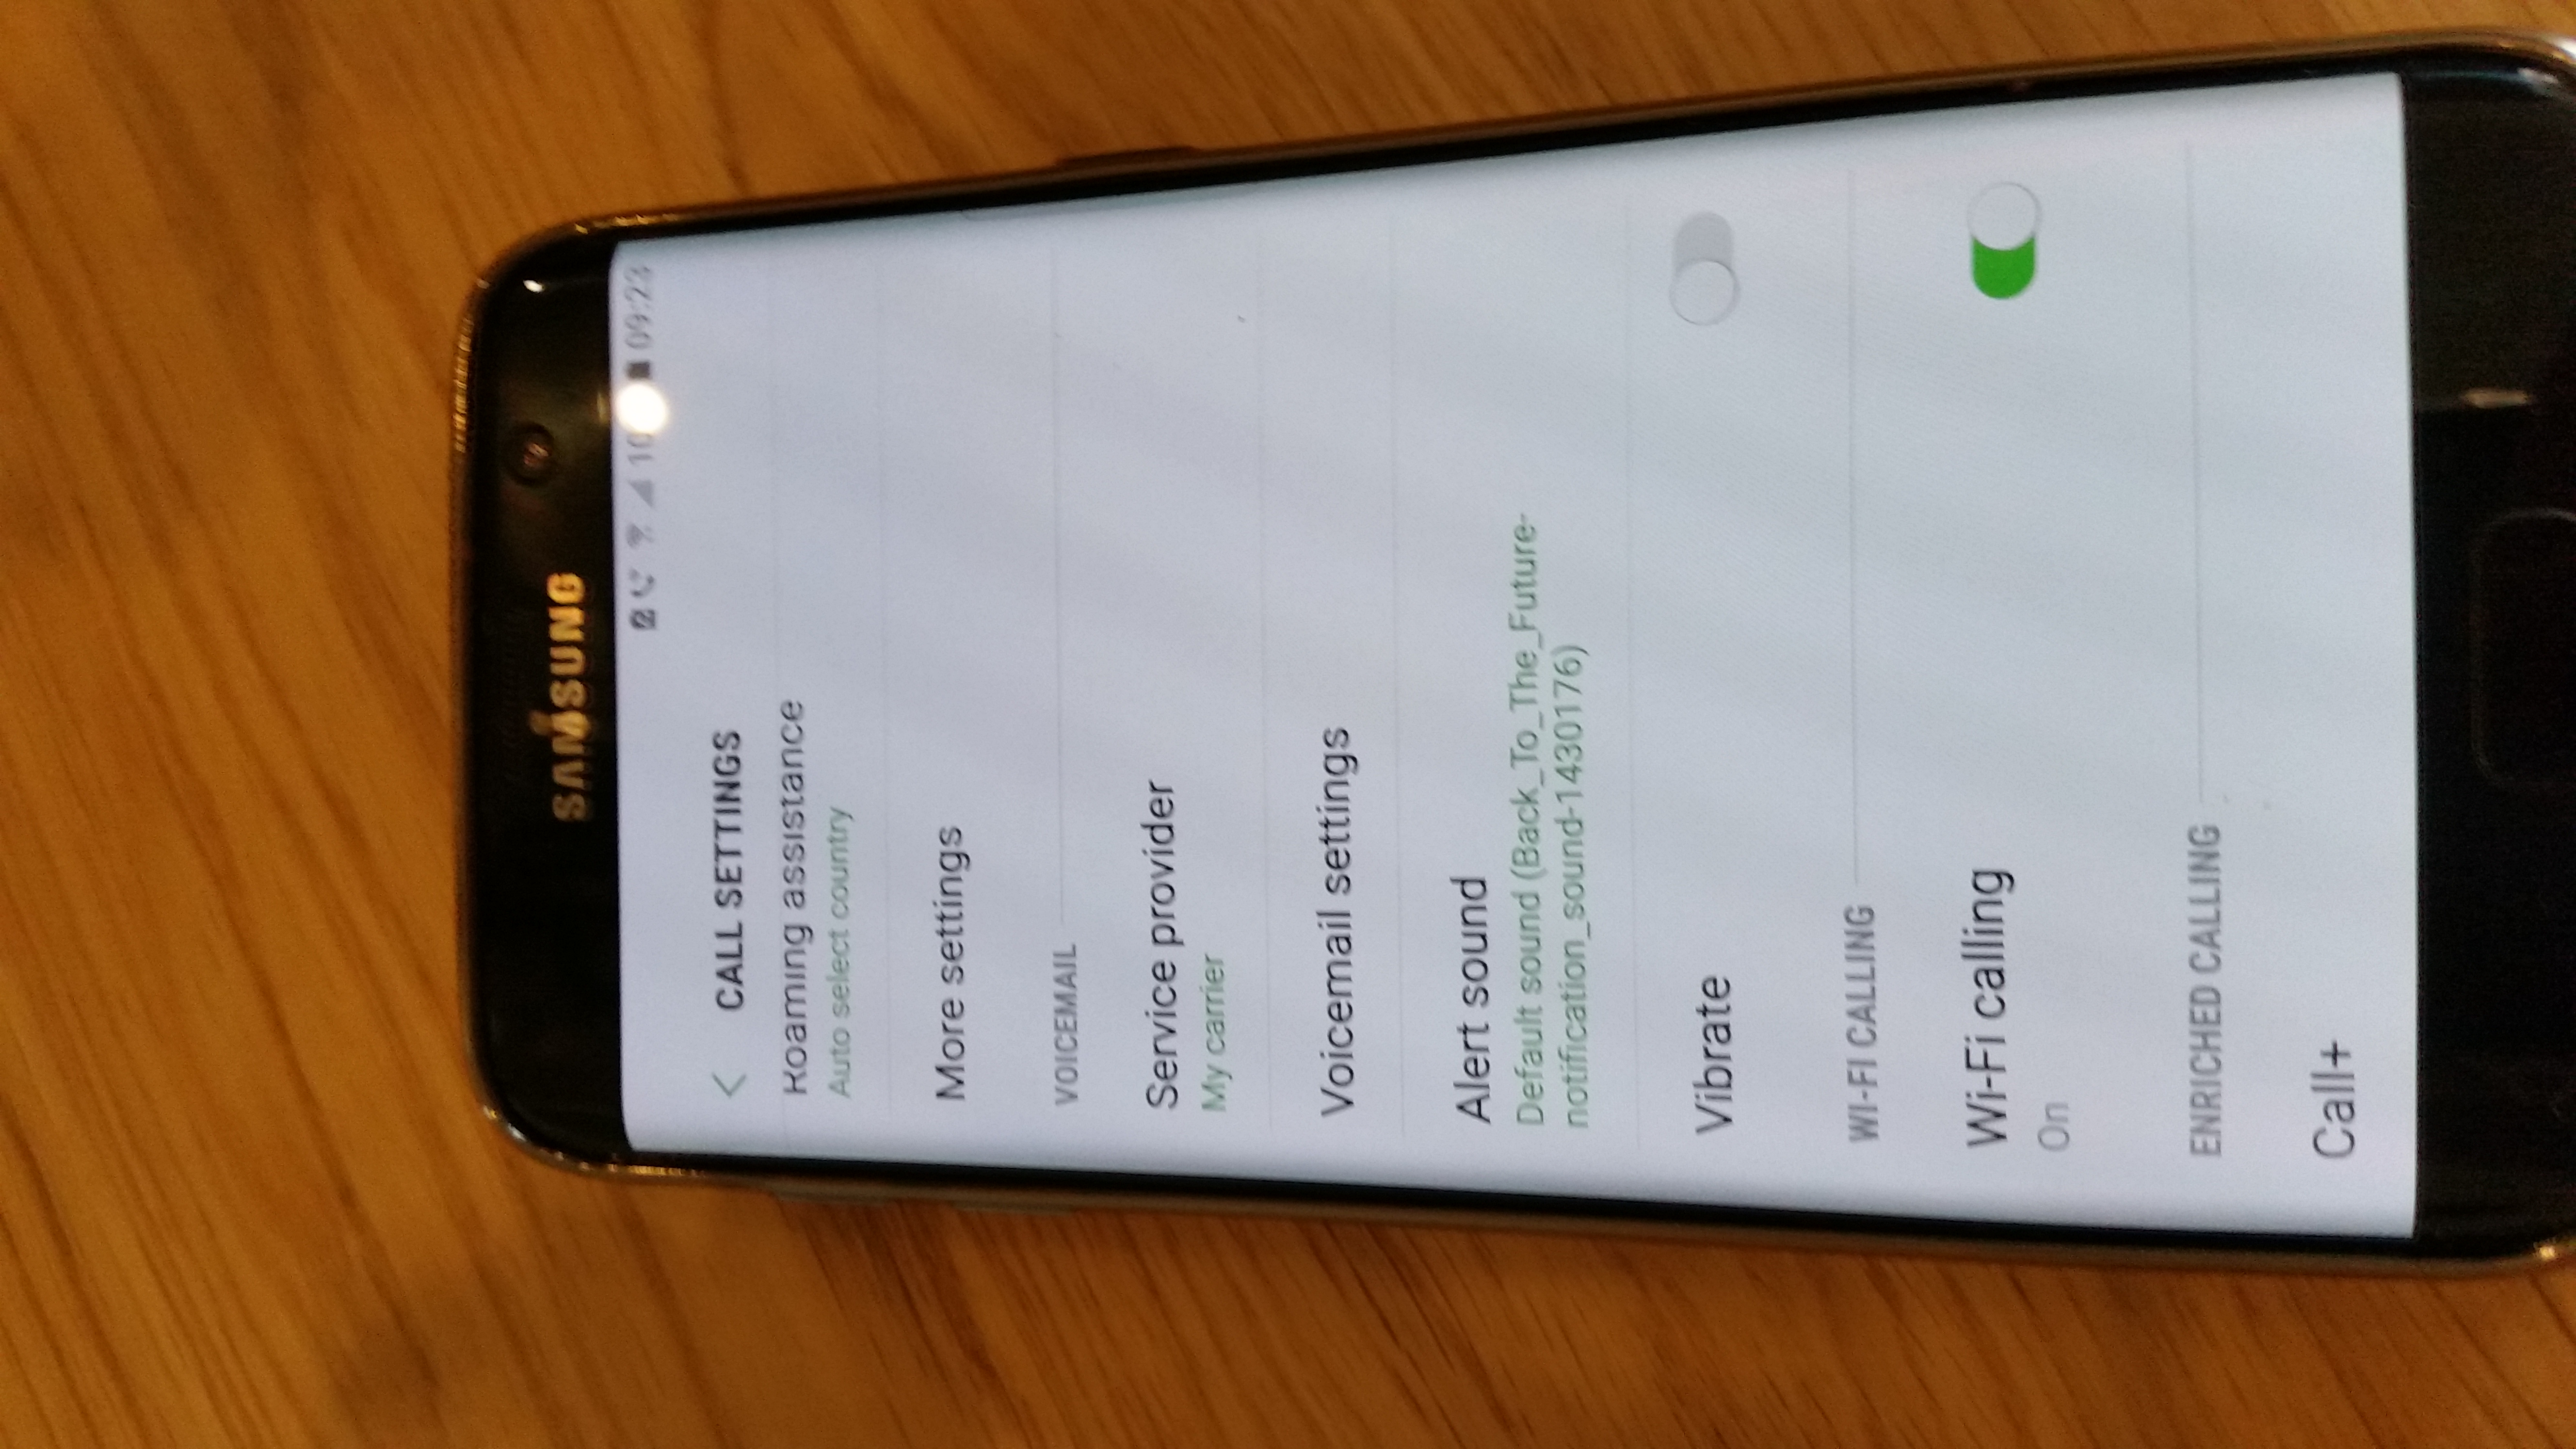 Solved: Galaxy S7 EDGE wifi calling, no option - Page 2 - Community home